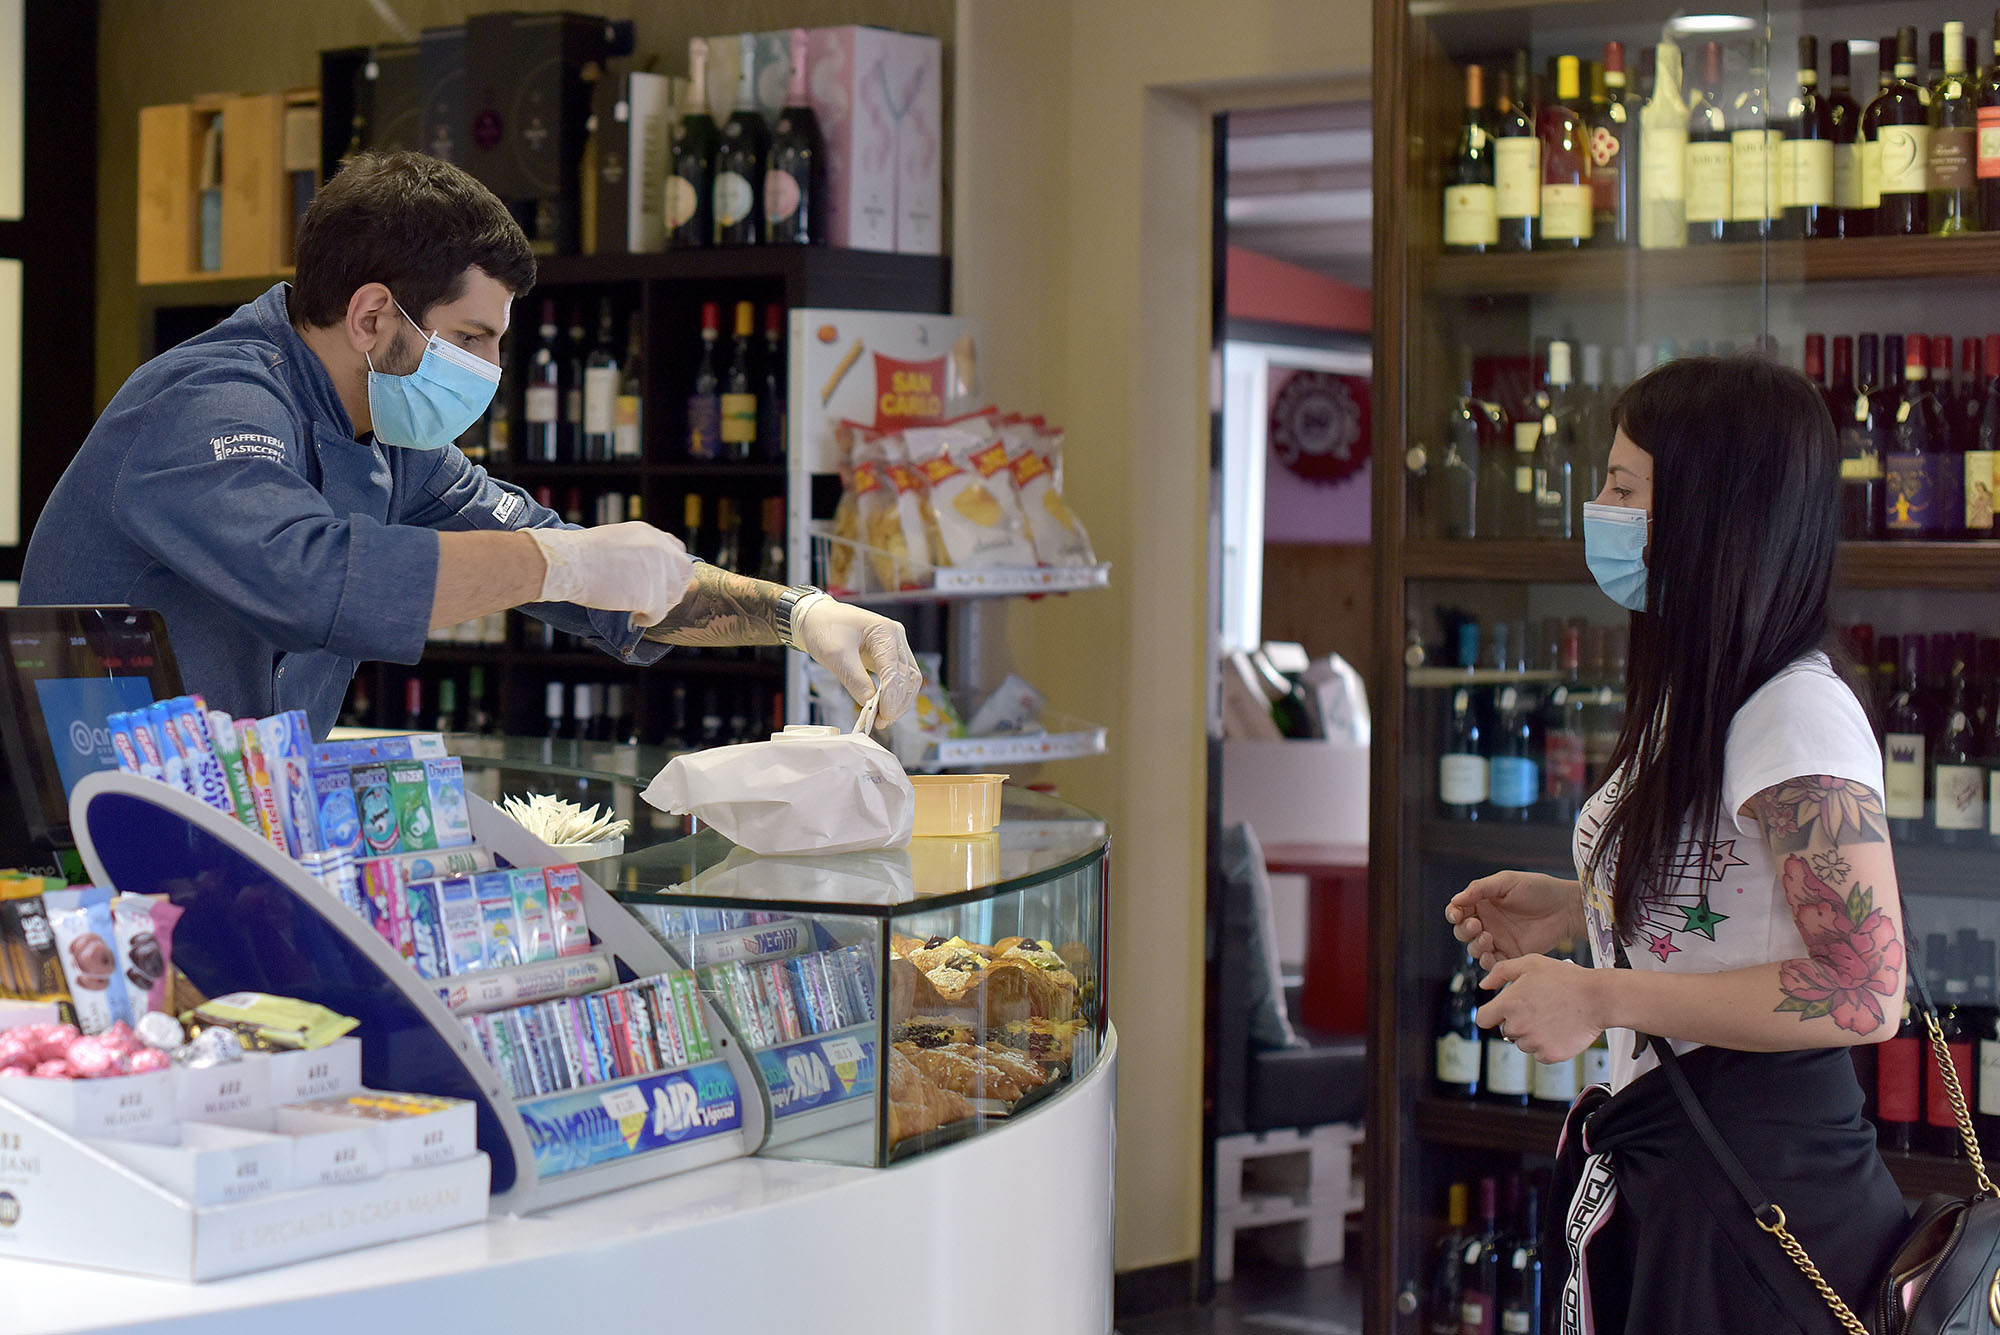 Cafe clerks prepare coffee and cappuccinos for customers waiting to take out in Rome, Italy, on May 4.